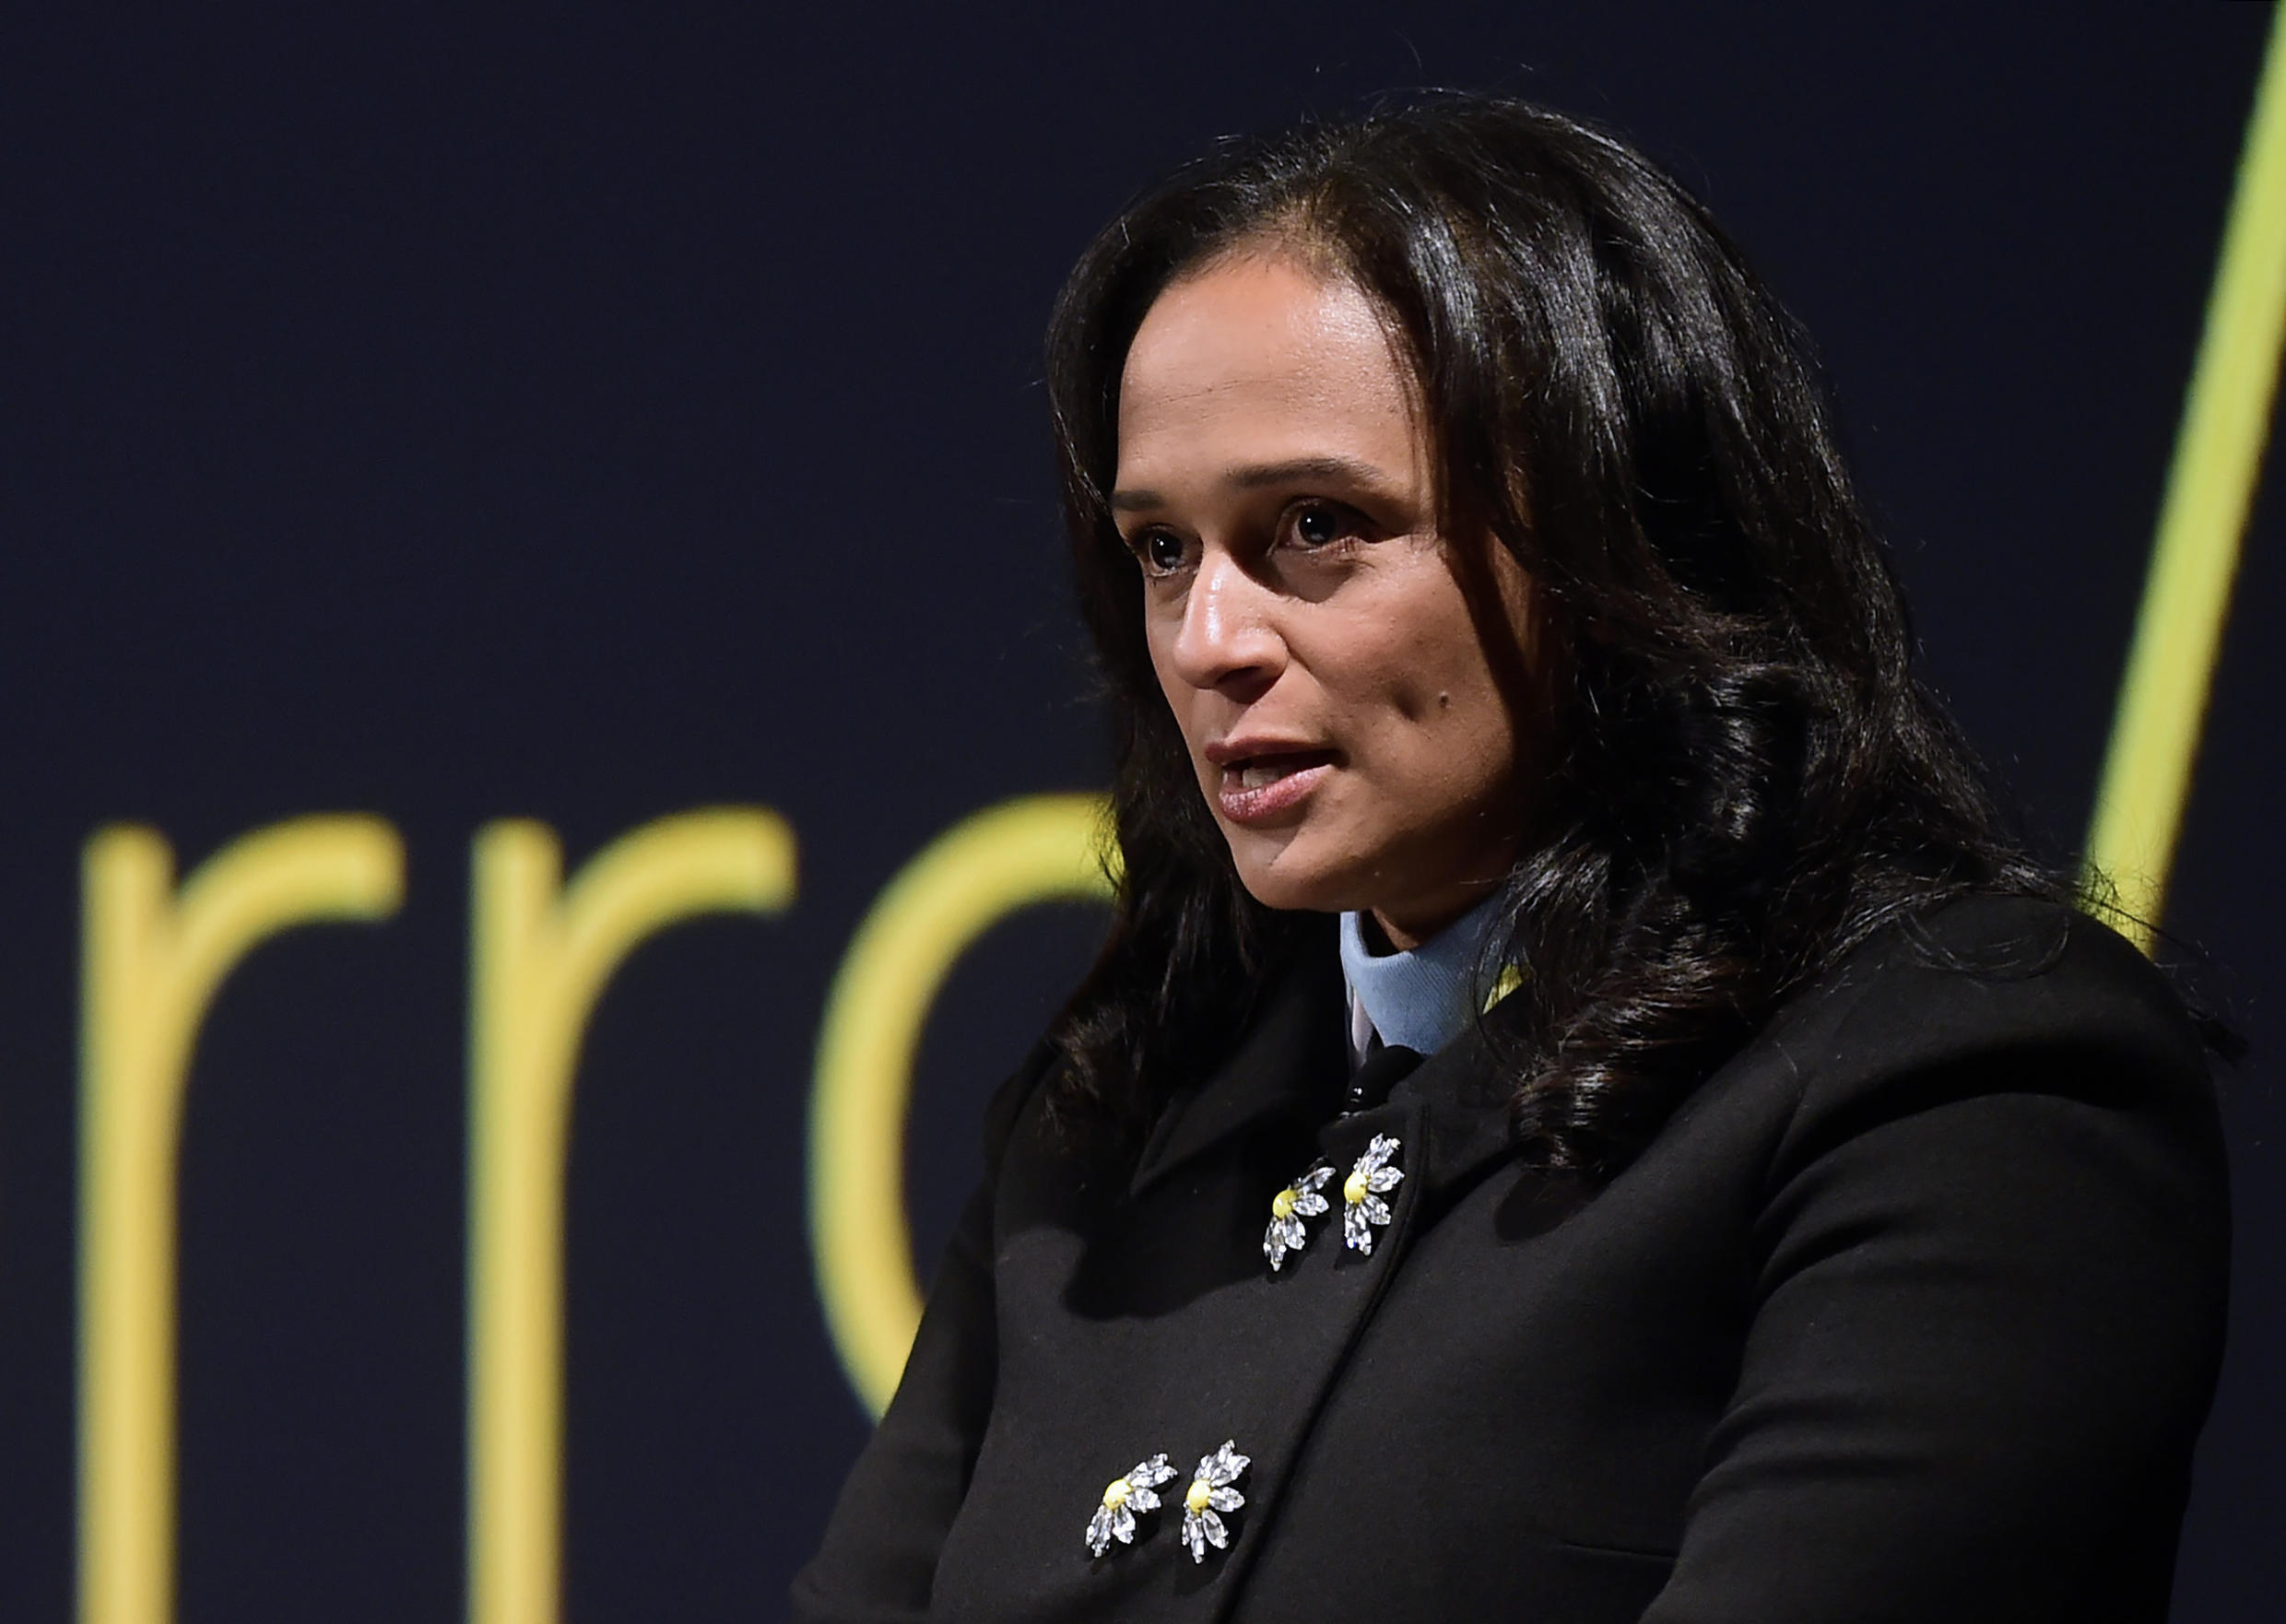 Isabel dos Santos and her husband are accused of syphoning off more than one billion dollars from Angolan state companies